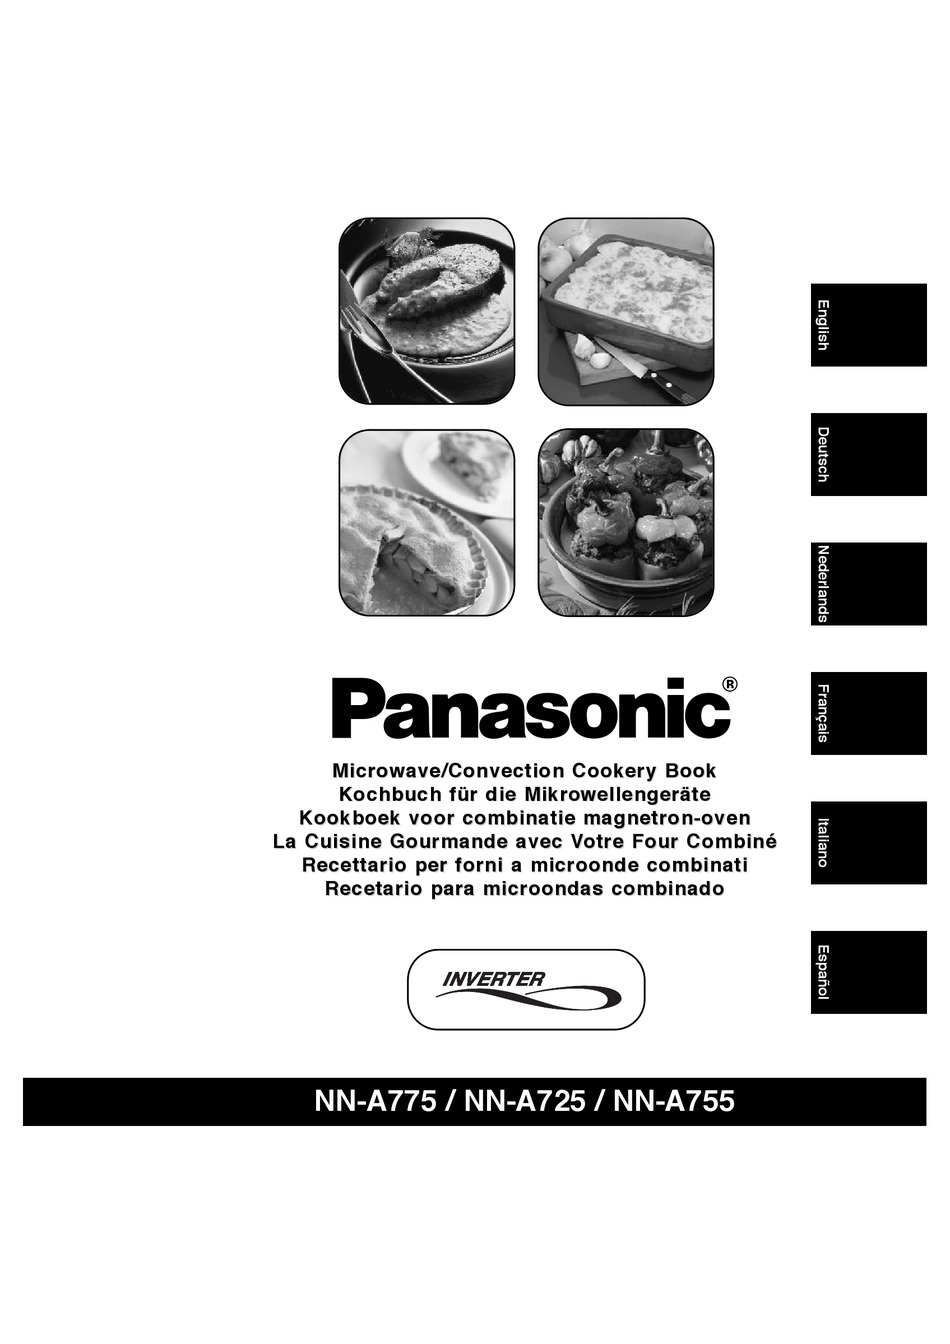 PANASONIC INVERTER NN-A775 COOKERY BOOK Pdf Download